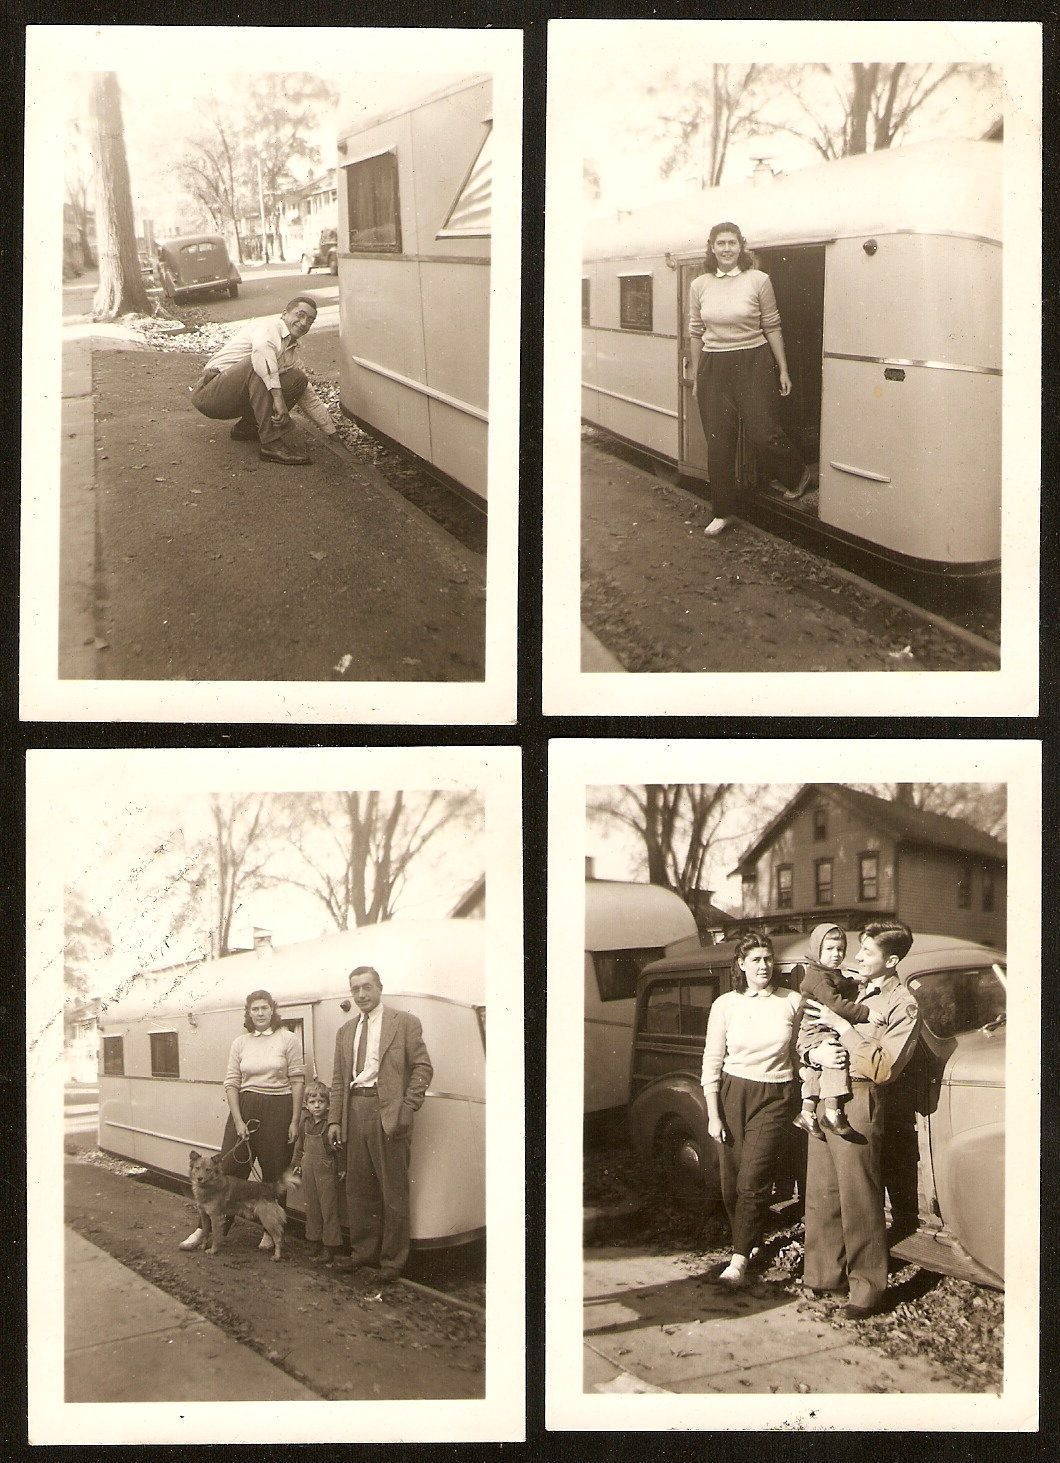 1940's WOODIE Woody WAGON Travel Trailer MOBILE HOME Original Photo LOT of 4 | eBay